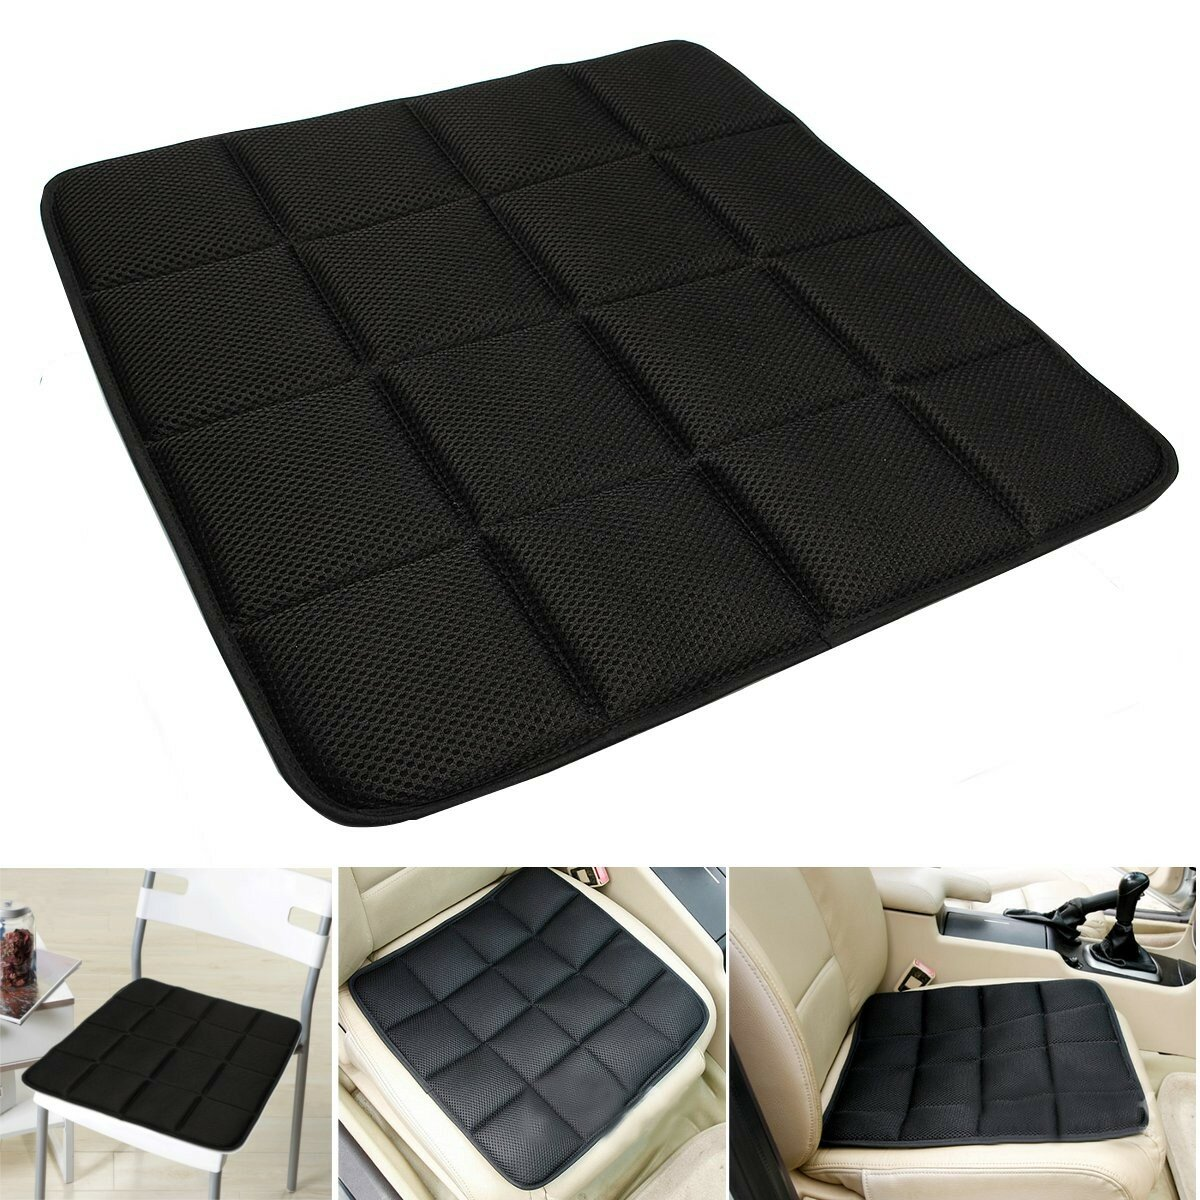 Desk Chair Seat Cushion Bamboo Charcoal Breathable Seat Cushion Cover Pad Mat For Car Office Chair Black